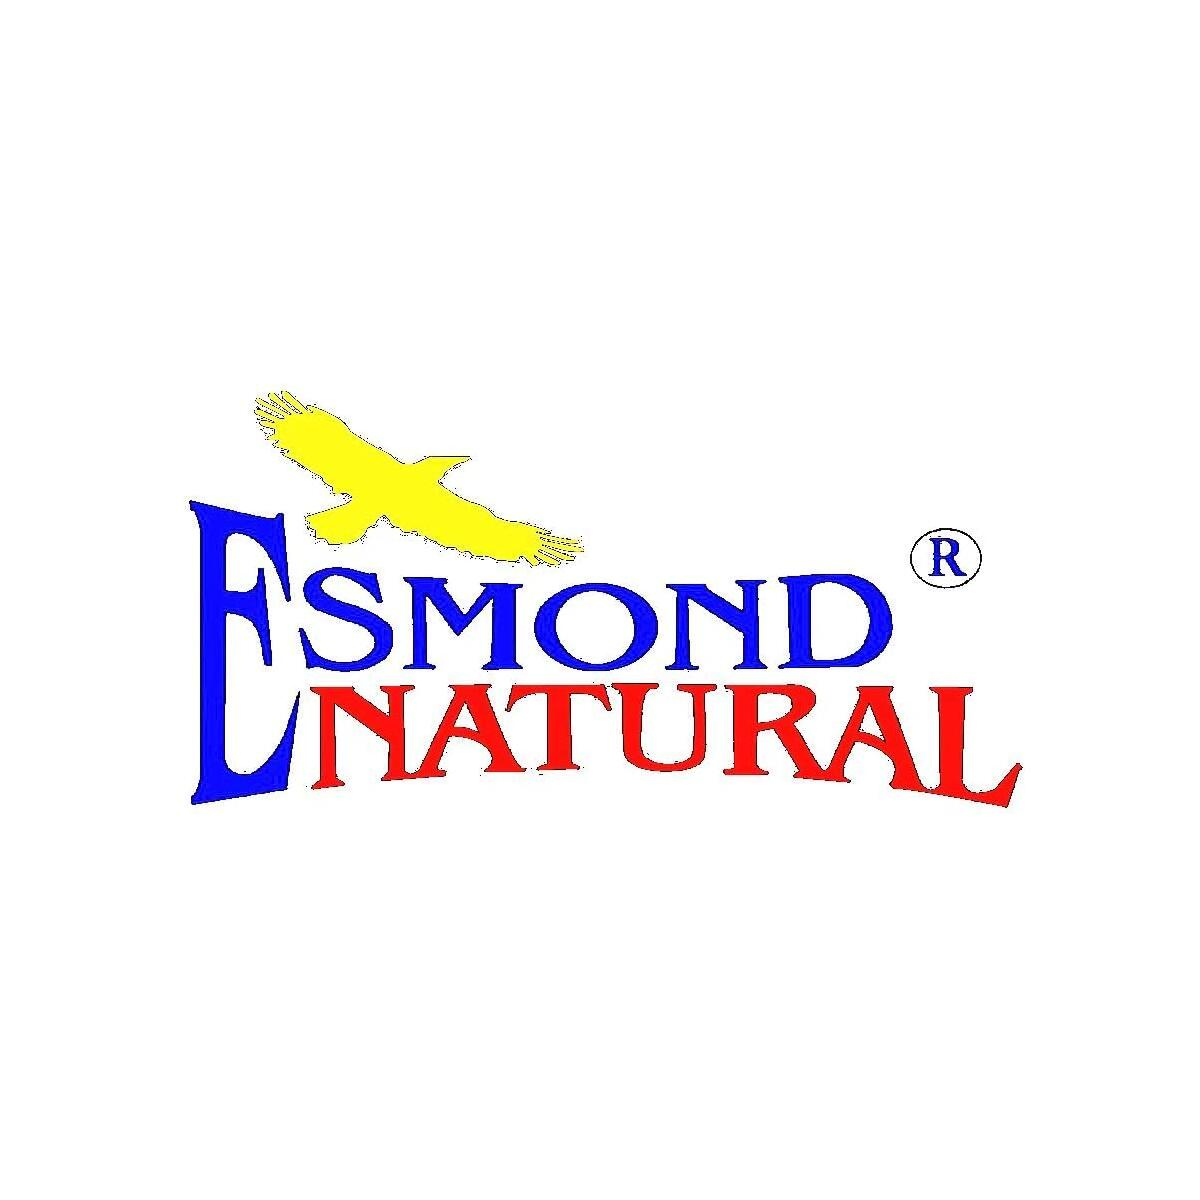 (5 Count, 25% Off) Esmond Natural: ENC Silybum Marianum Seed Oil Complex (Liver Support), GMP, Natural Product Assn Certified, Made in USA-1000mg, 300 Tablets